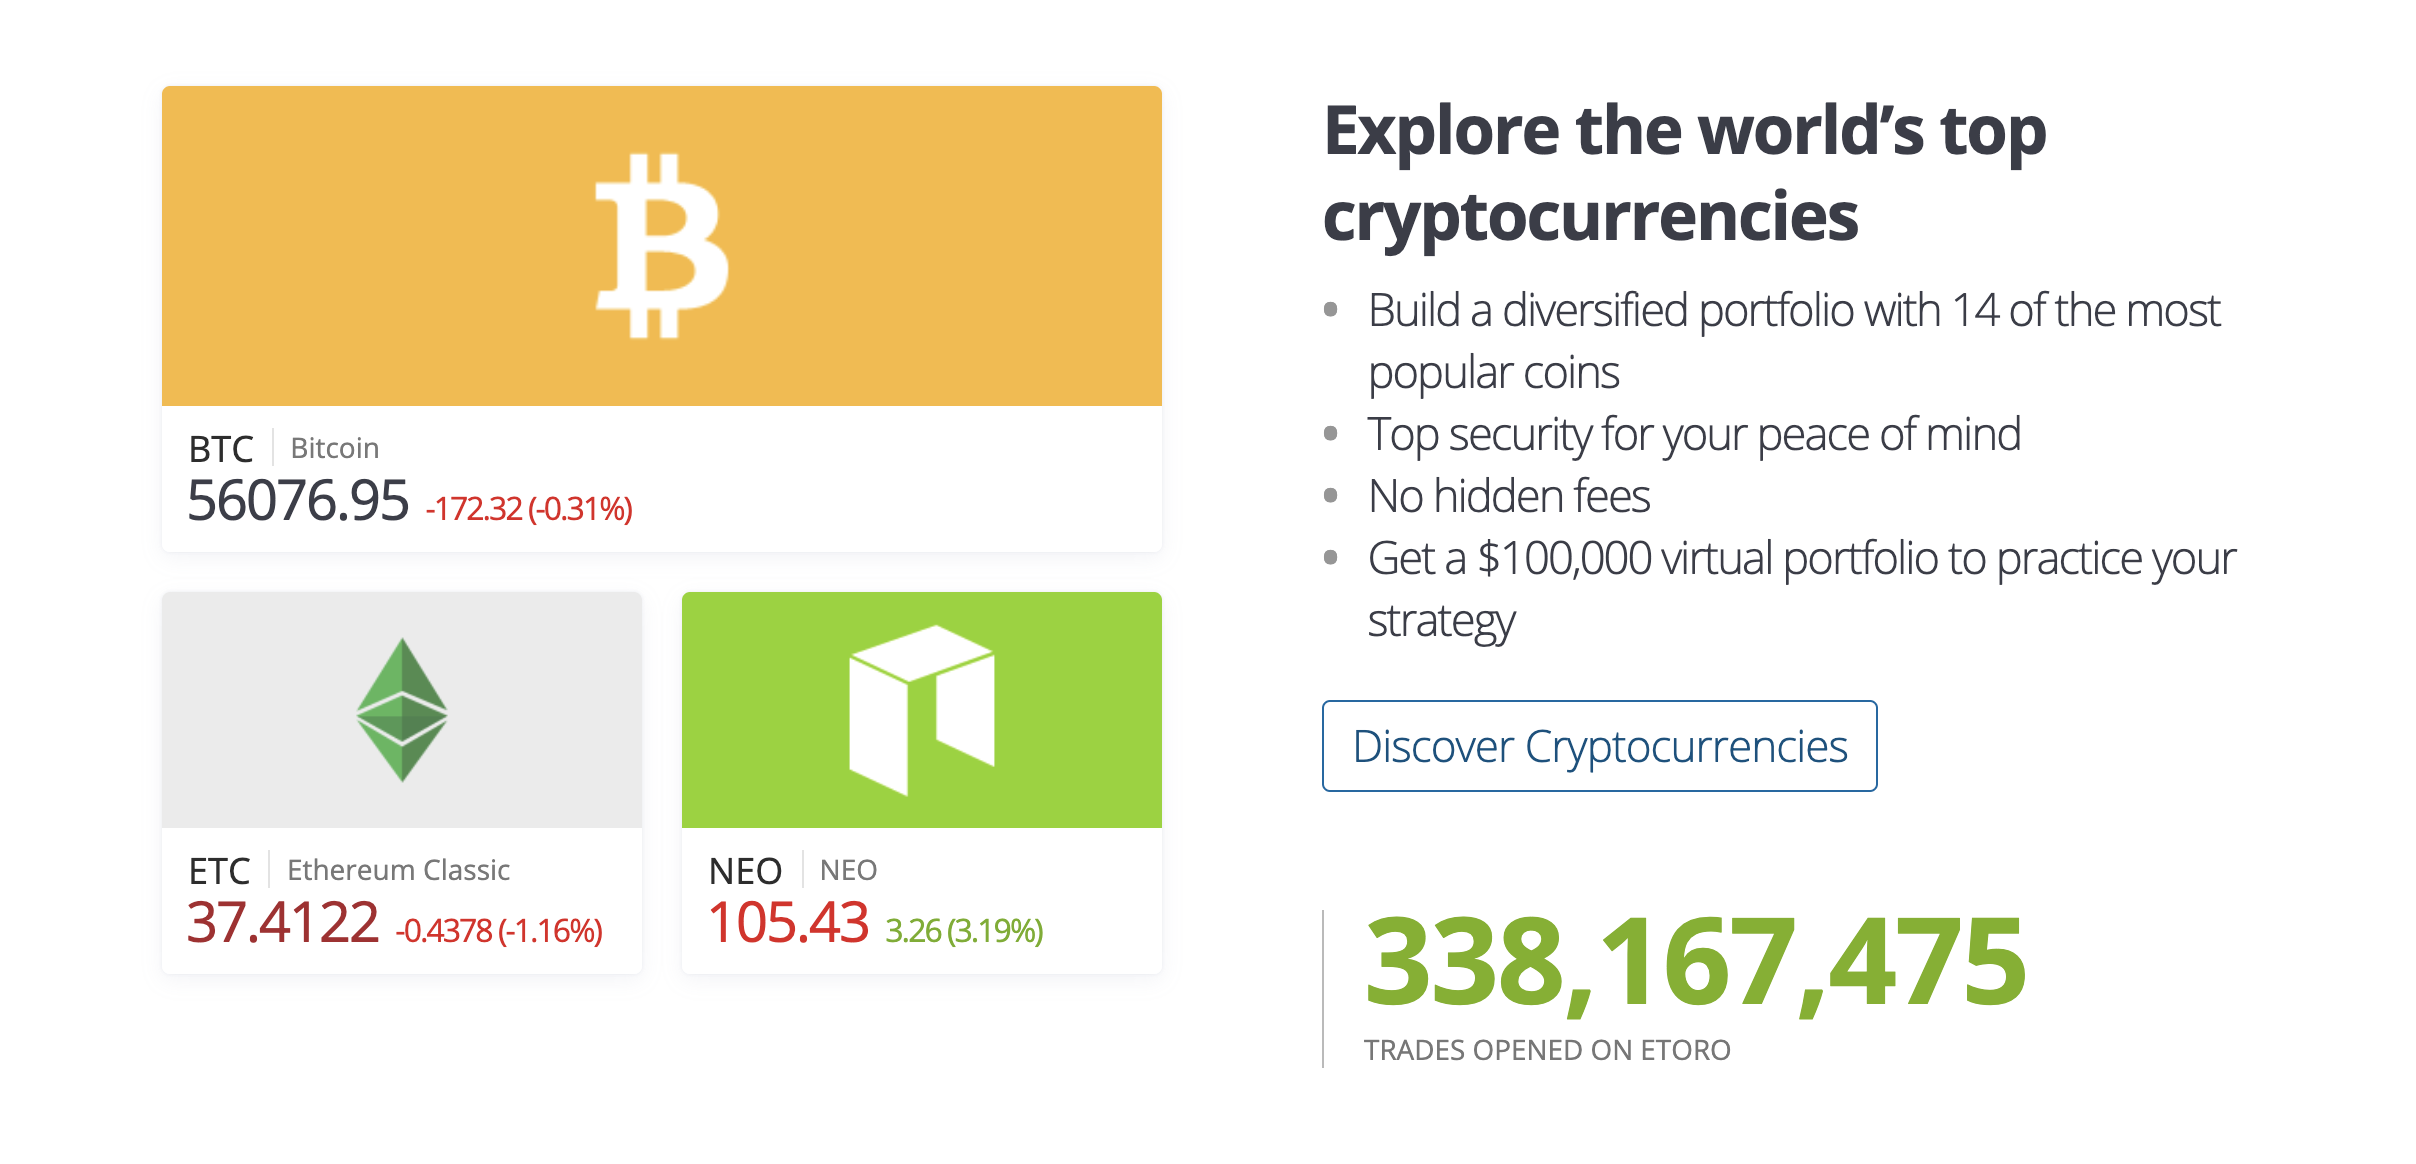 """A screenshot from etoro.com showing some of the top cryptocurrencies the platform offers to trade. The text reads """"explore the world's top cryptocurrencies"""" and lists some of the top features of the app. It says that 338,167,475 trades have been opened on eToro."""